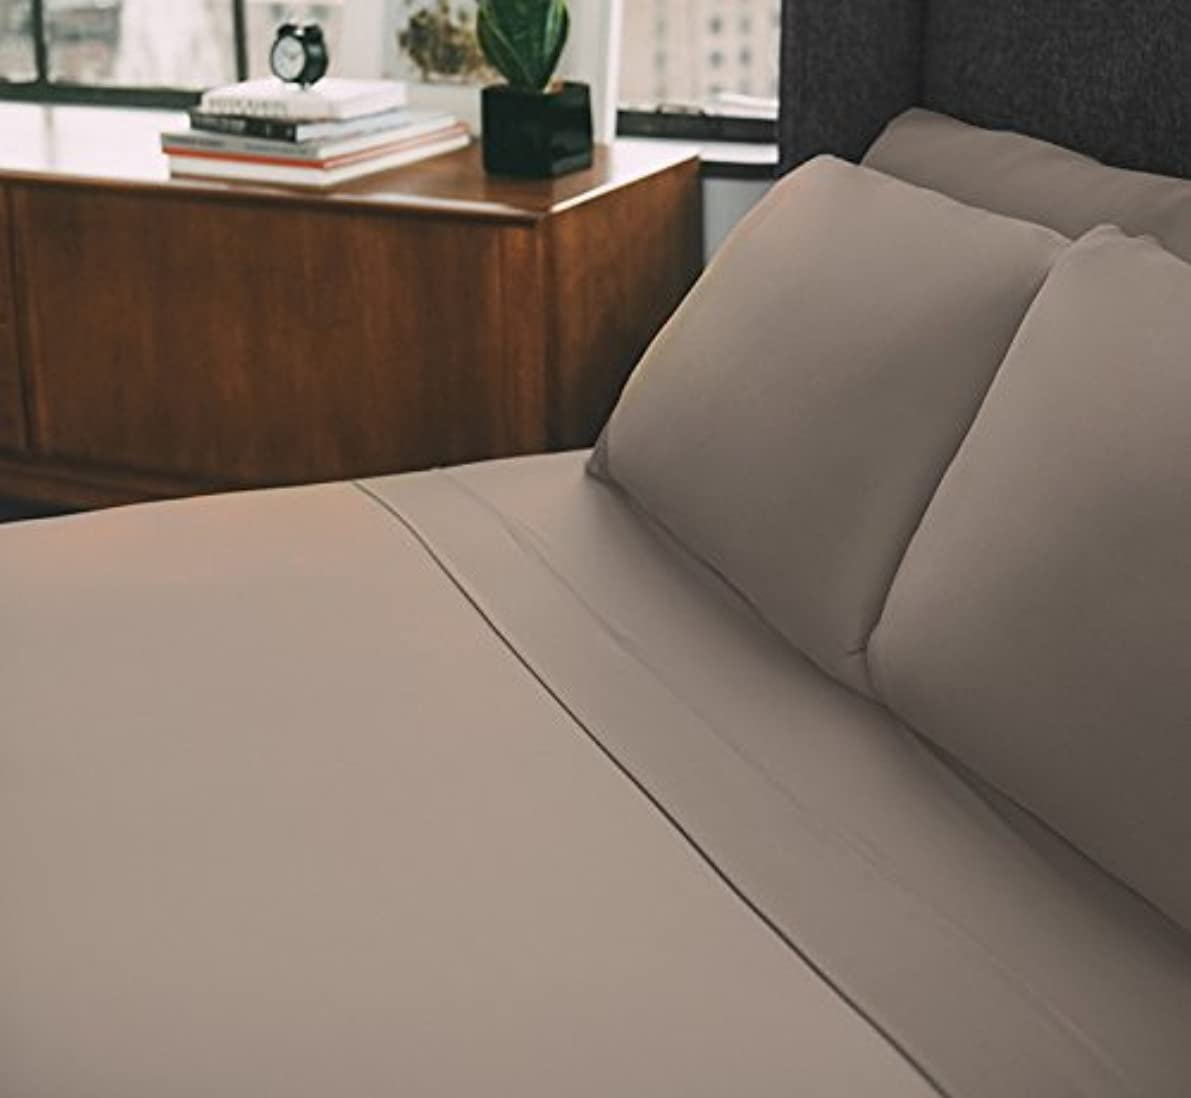 SHEEX - ONE Collection Pillowcases, Super-Soft Sheets Work to Help Keep You Cool and Comfortable All Through The Night, Khaki (King)